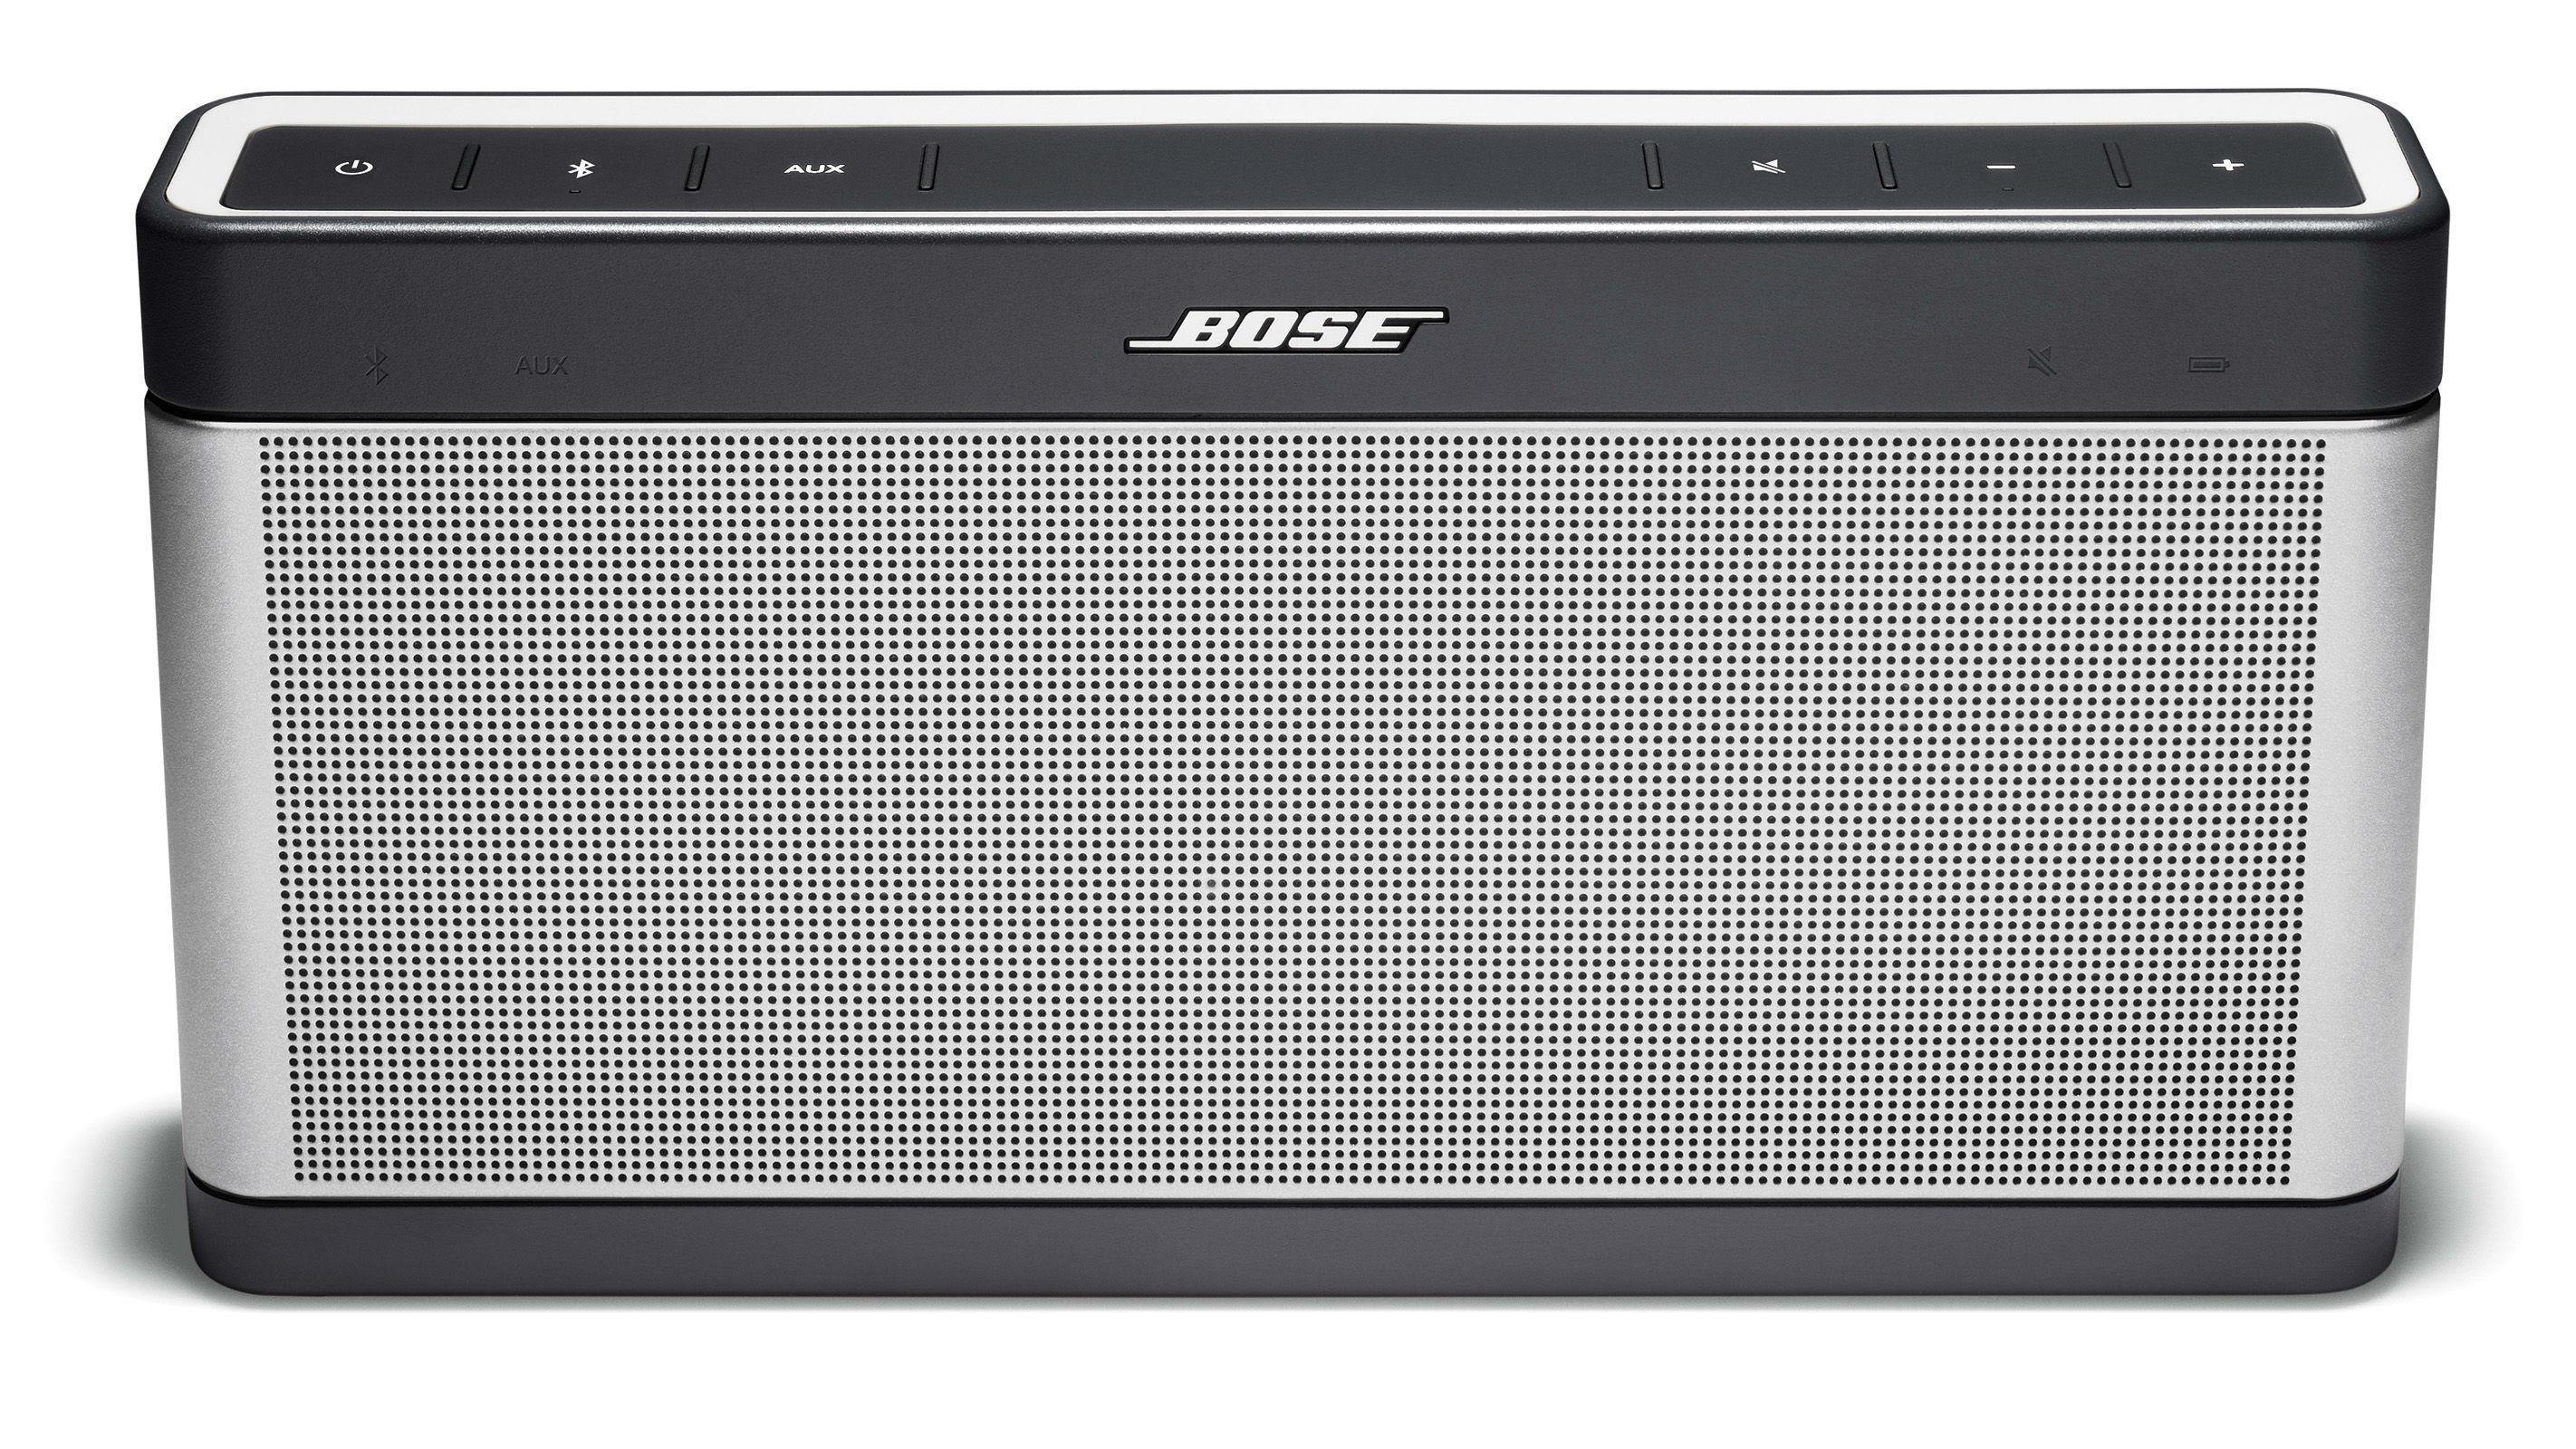 Bose Speakers For Cars >> Bose introduces SoundLink Bluetooth speaker III | Digital Trends